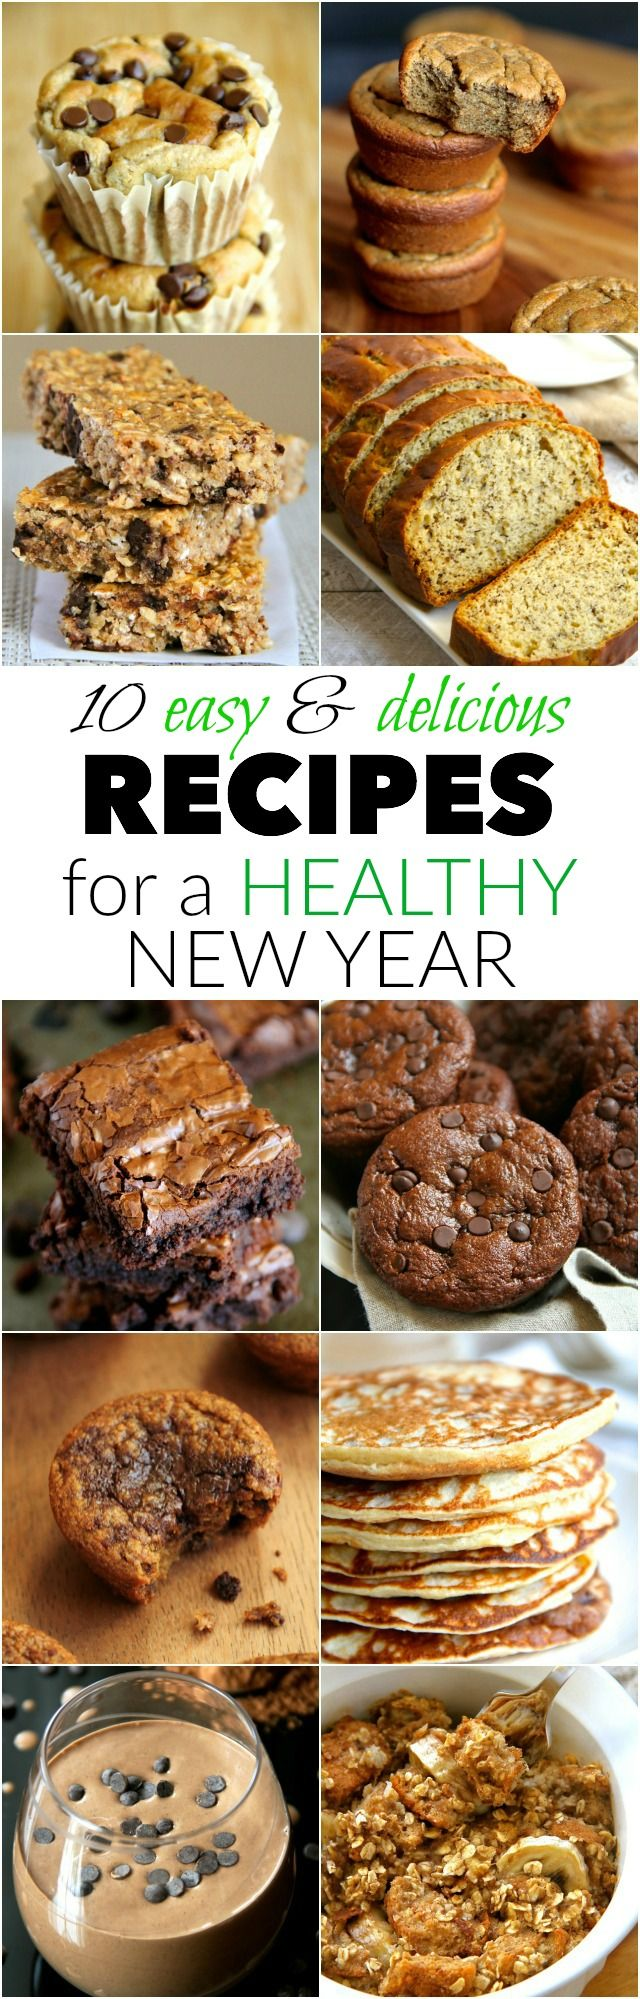 10 Easy and Delicious Recipes for a Healthy New Year | runningwithspoons.com